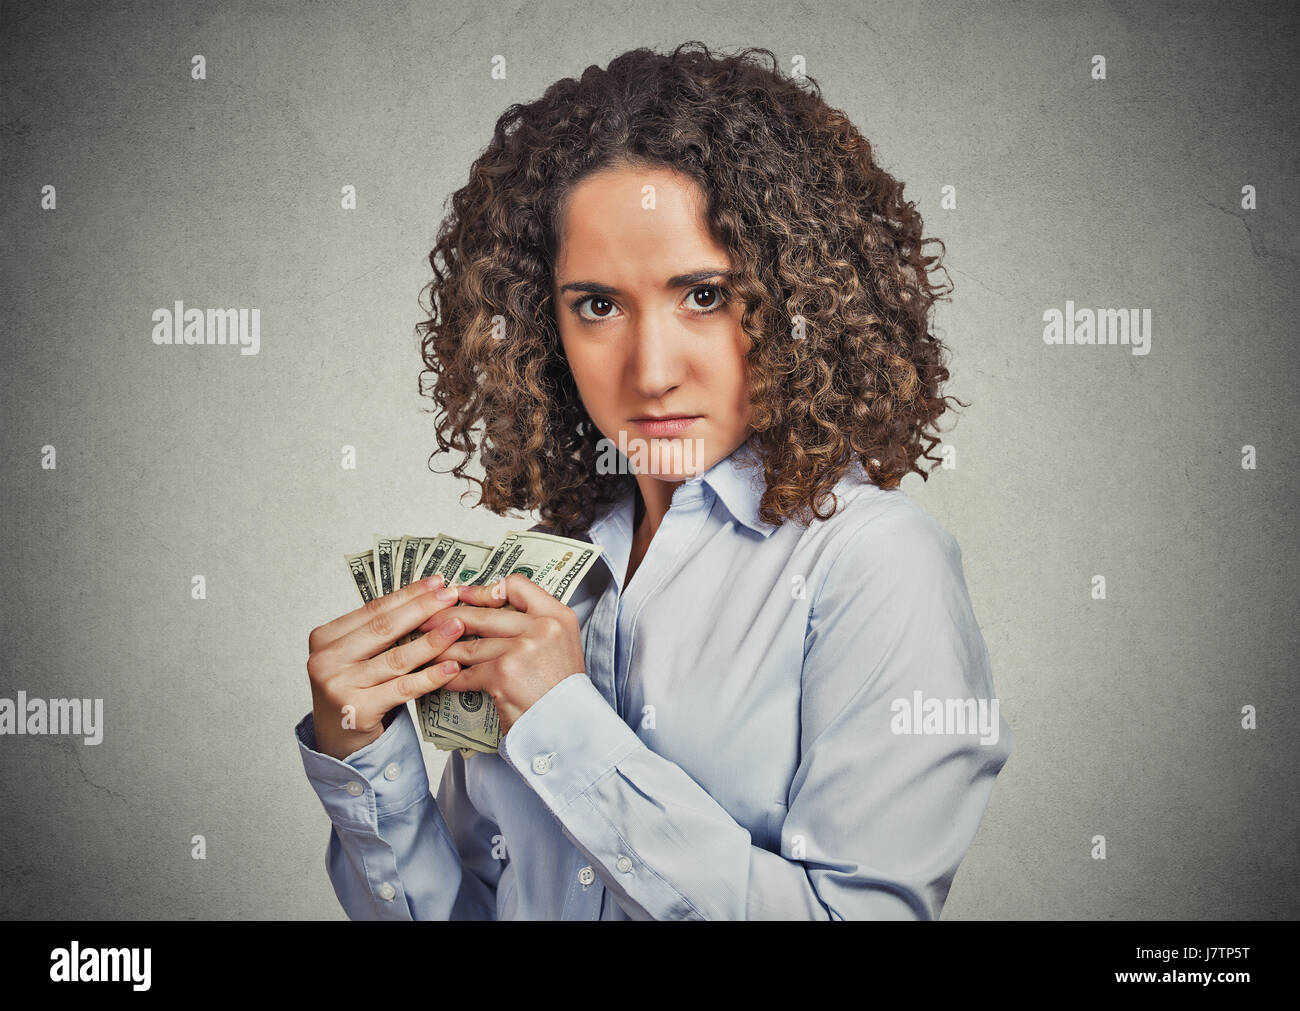 Closeup portrait greedy young woman corporate business employee, worker, student holding dollar banknotes tightly - Stock Image